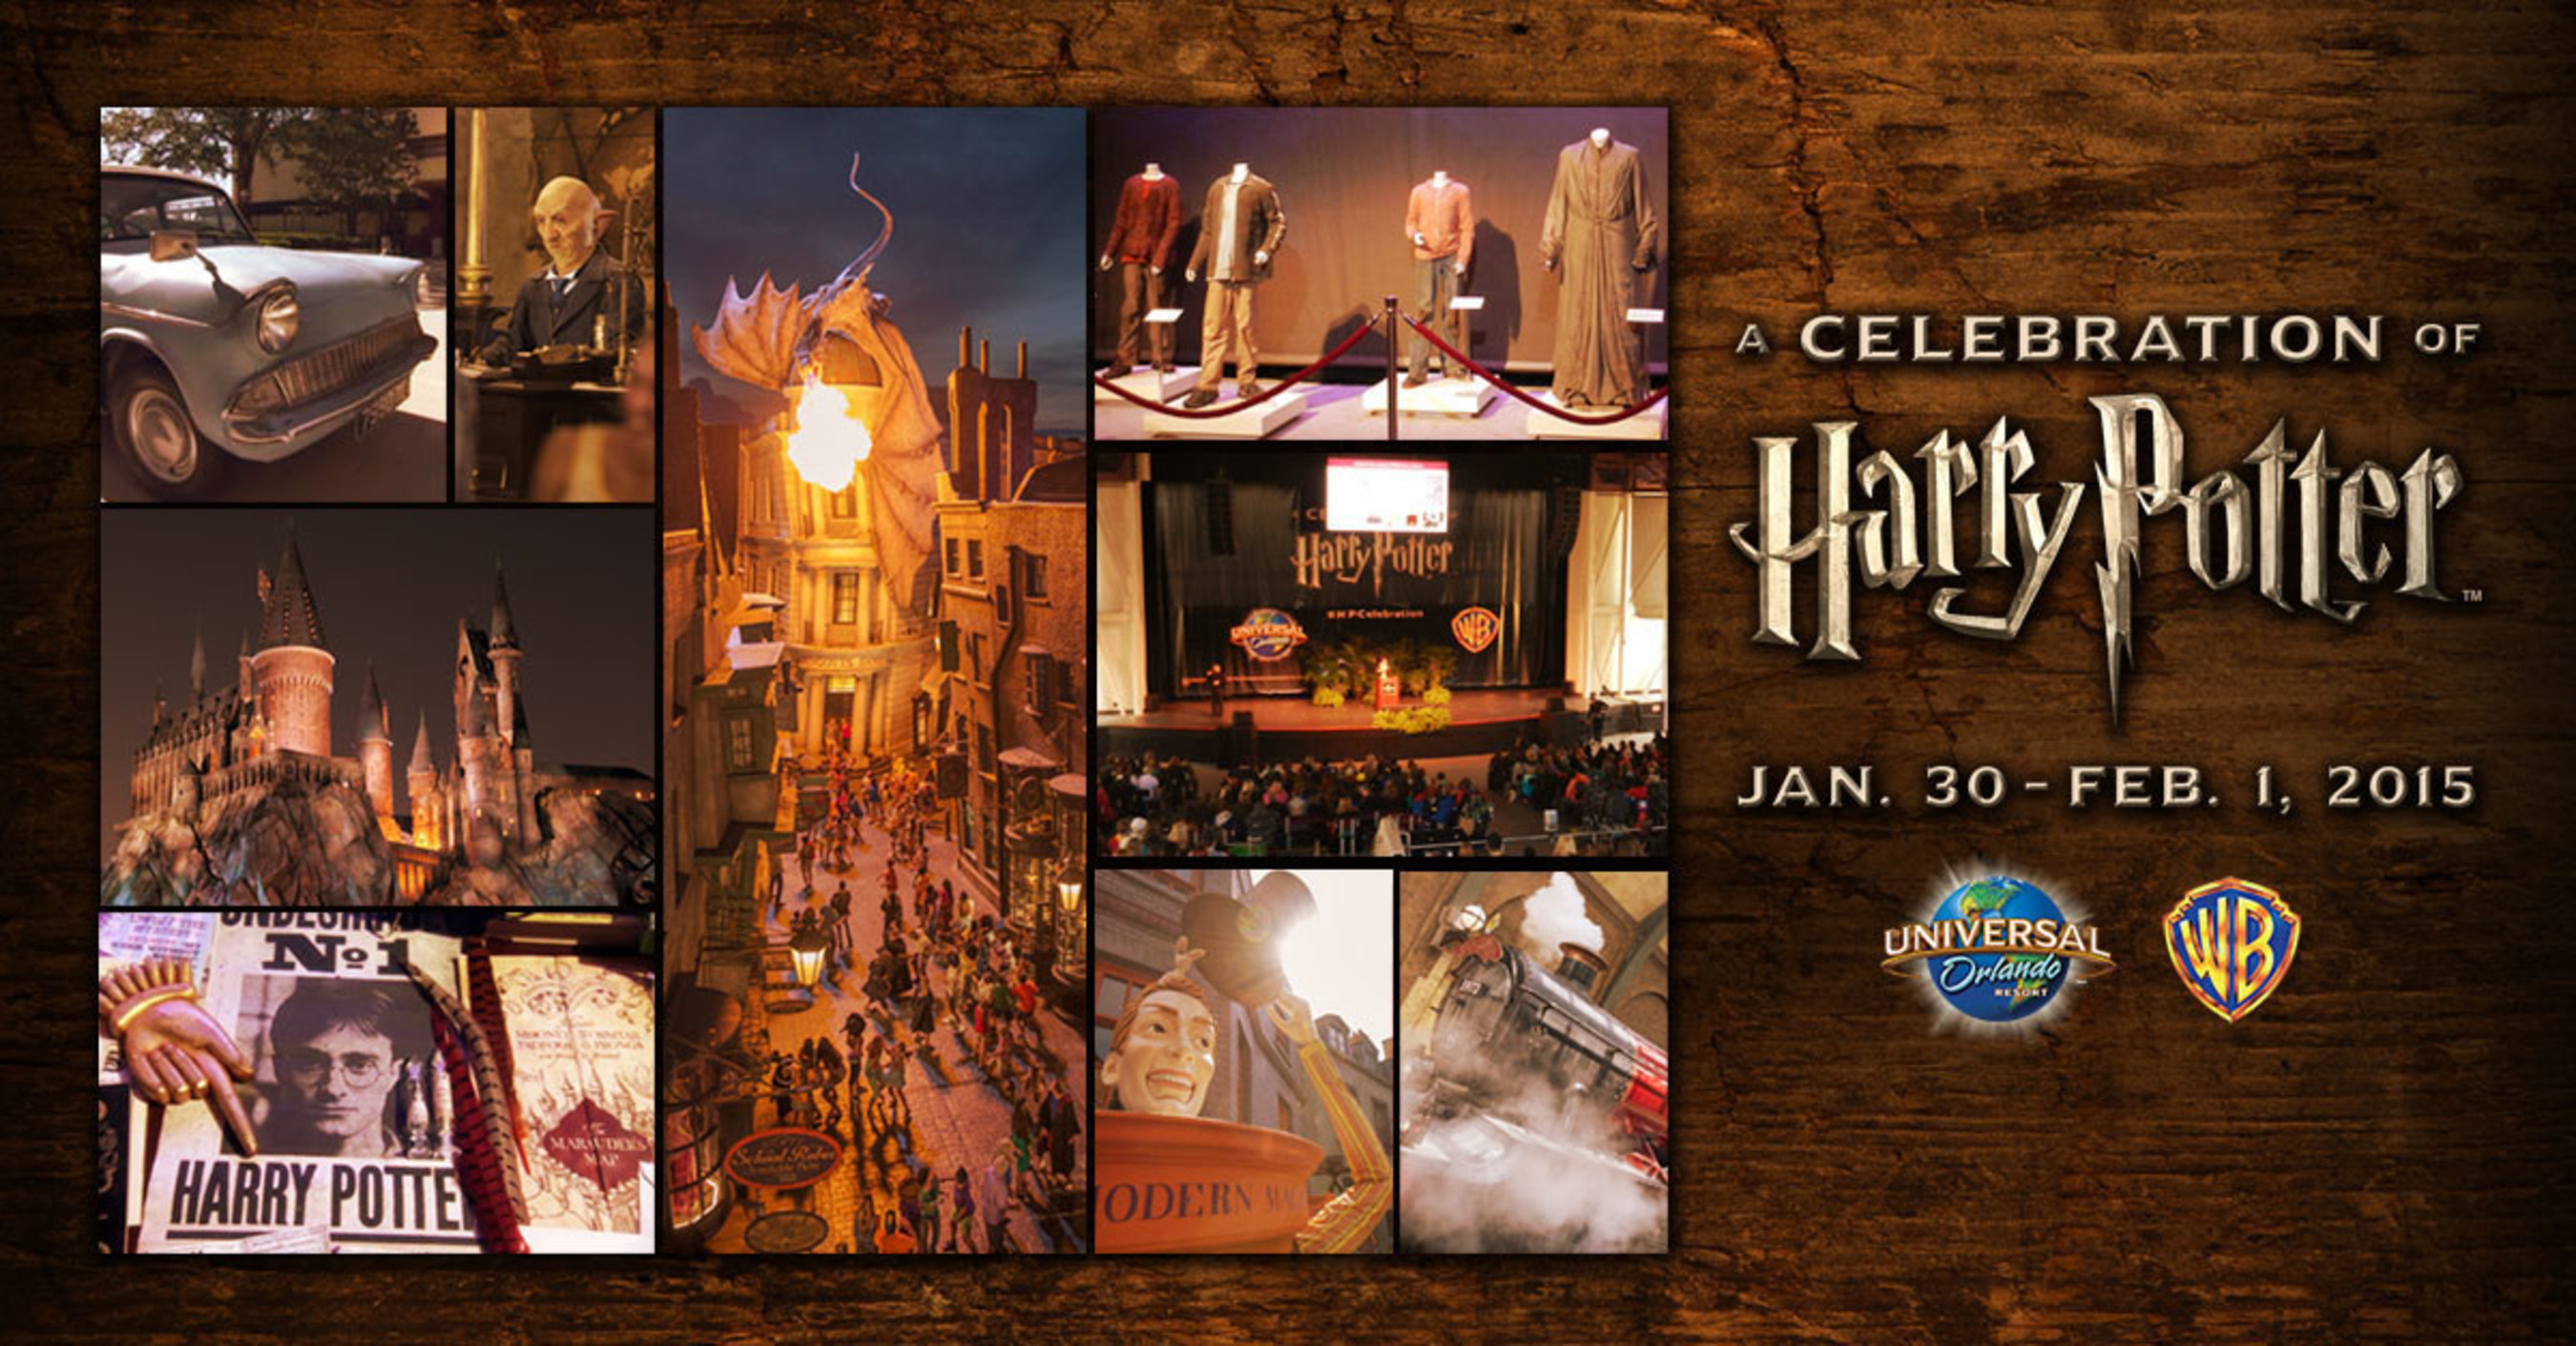 "HARRY POTTER FILM TALENT ROBBIE COLTRANE, MICHAEL GAMBON, JAMES PHELPS, OLIVER PHELPS AND EVANNA LYNCH TO APPEAR AT ""A CELEBRATION OF HARRY POTTER"" EVENT AT UNIVERSAL ORLANDO RESORT JANUARY 30 - FEBRUARY 1, 2015"